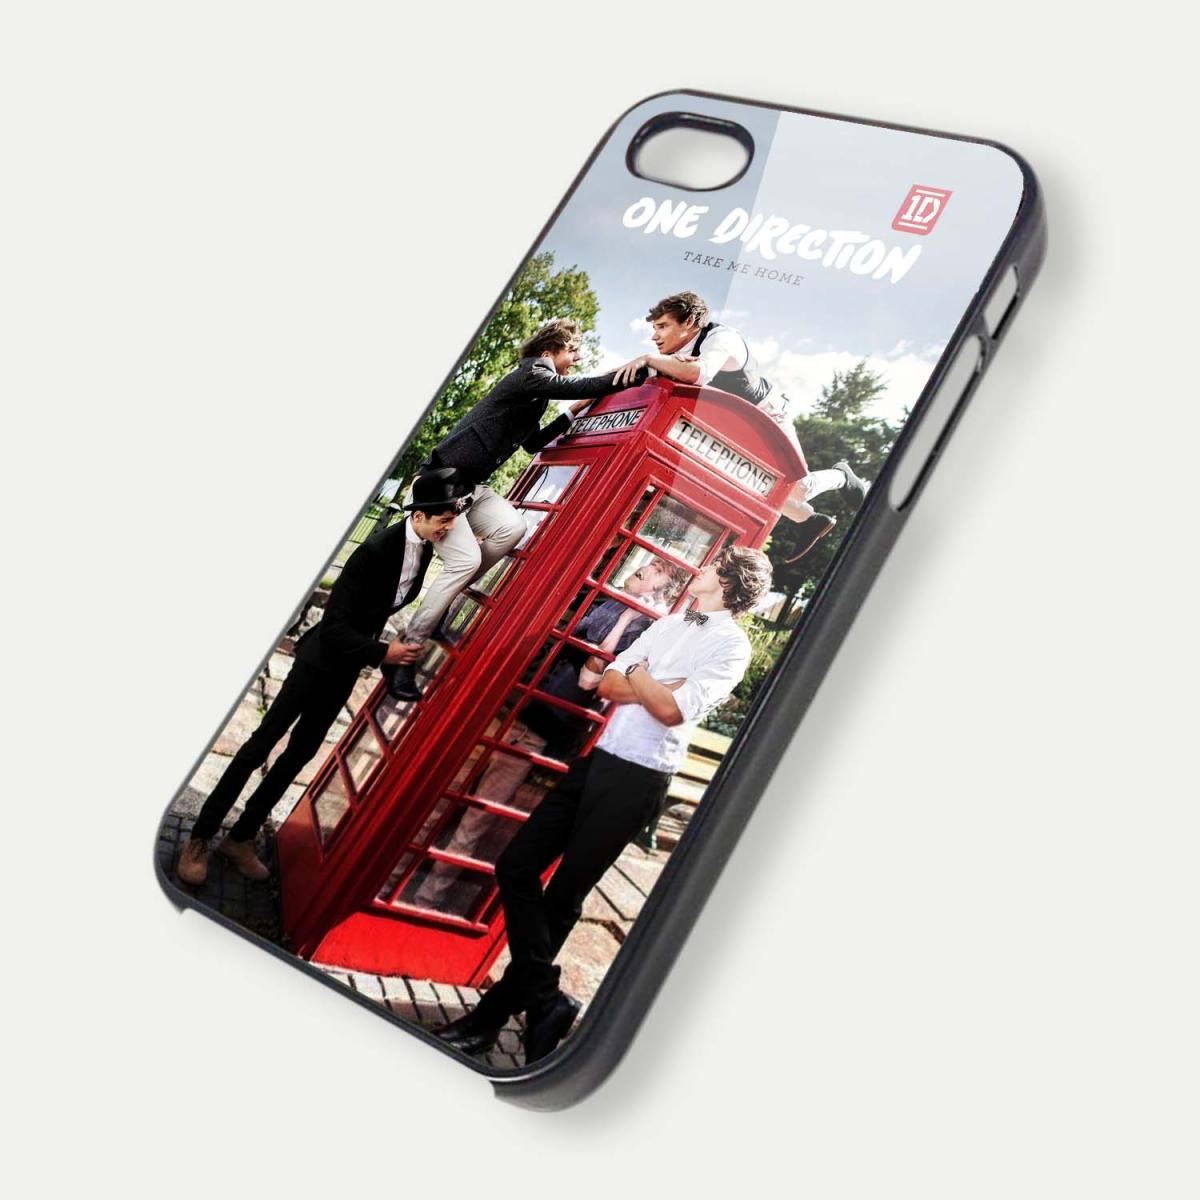 Displaying 15u0026gt; Images For - Iphone 5 Case One Direction...